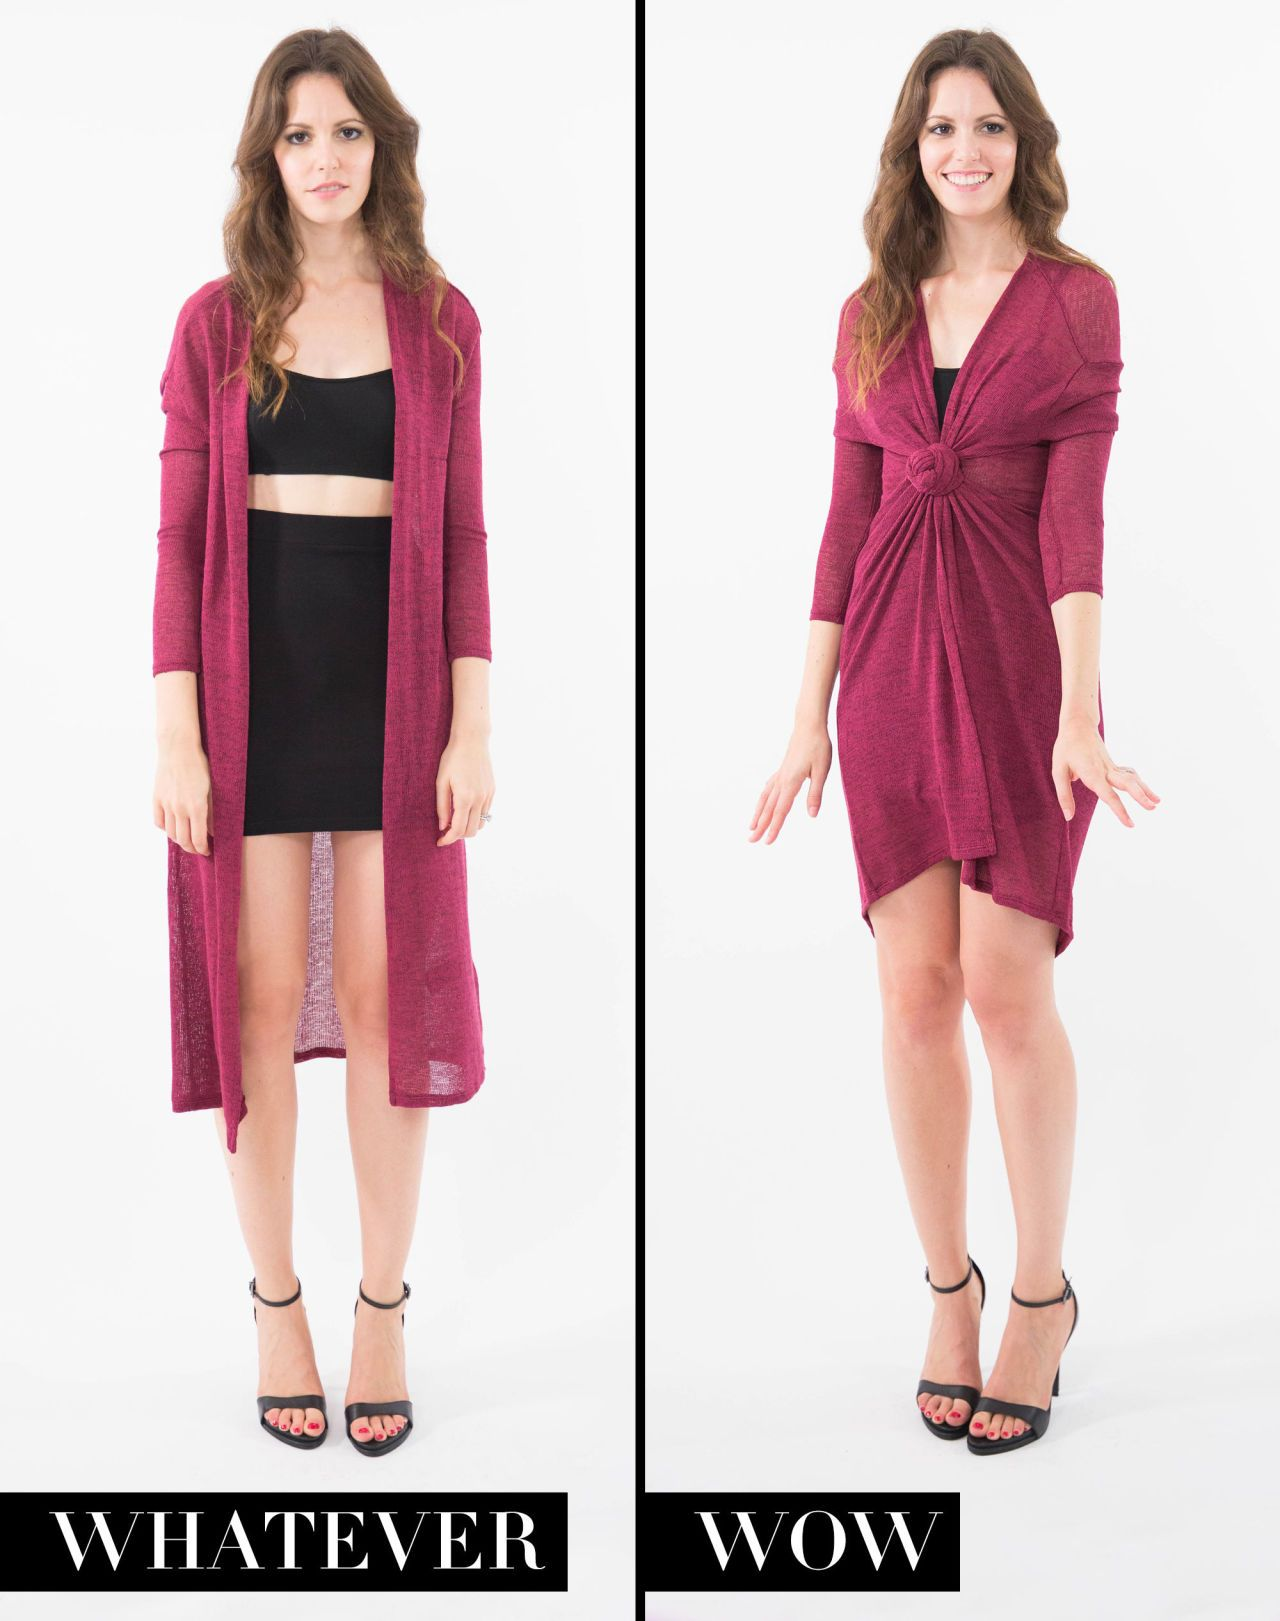 b8651f74ee Transform a long cardigan into a sophisticated cocktail dress by knotting  it closed in the center. From  6 Ways Knotting Your Clothes Can Change Your  Whole ...